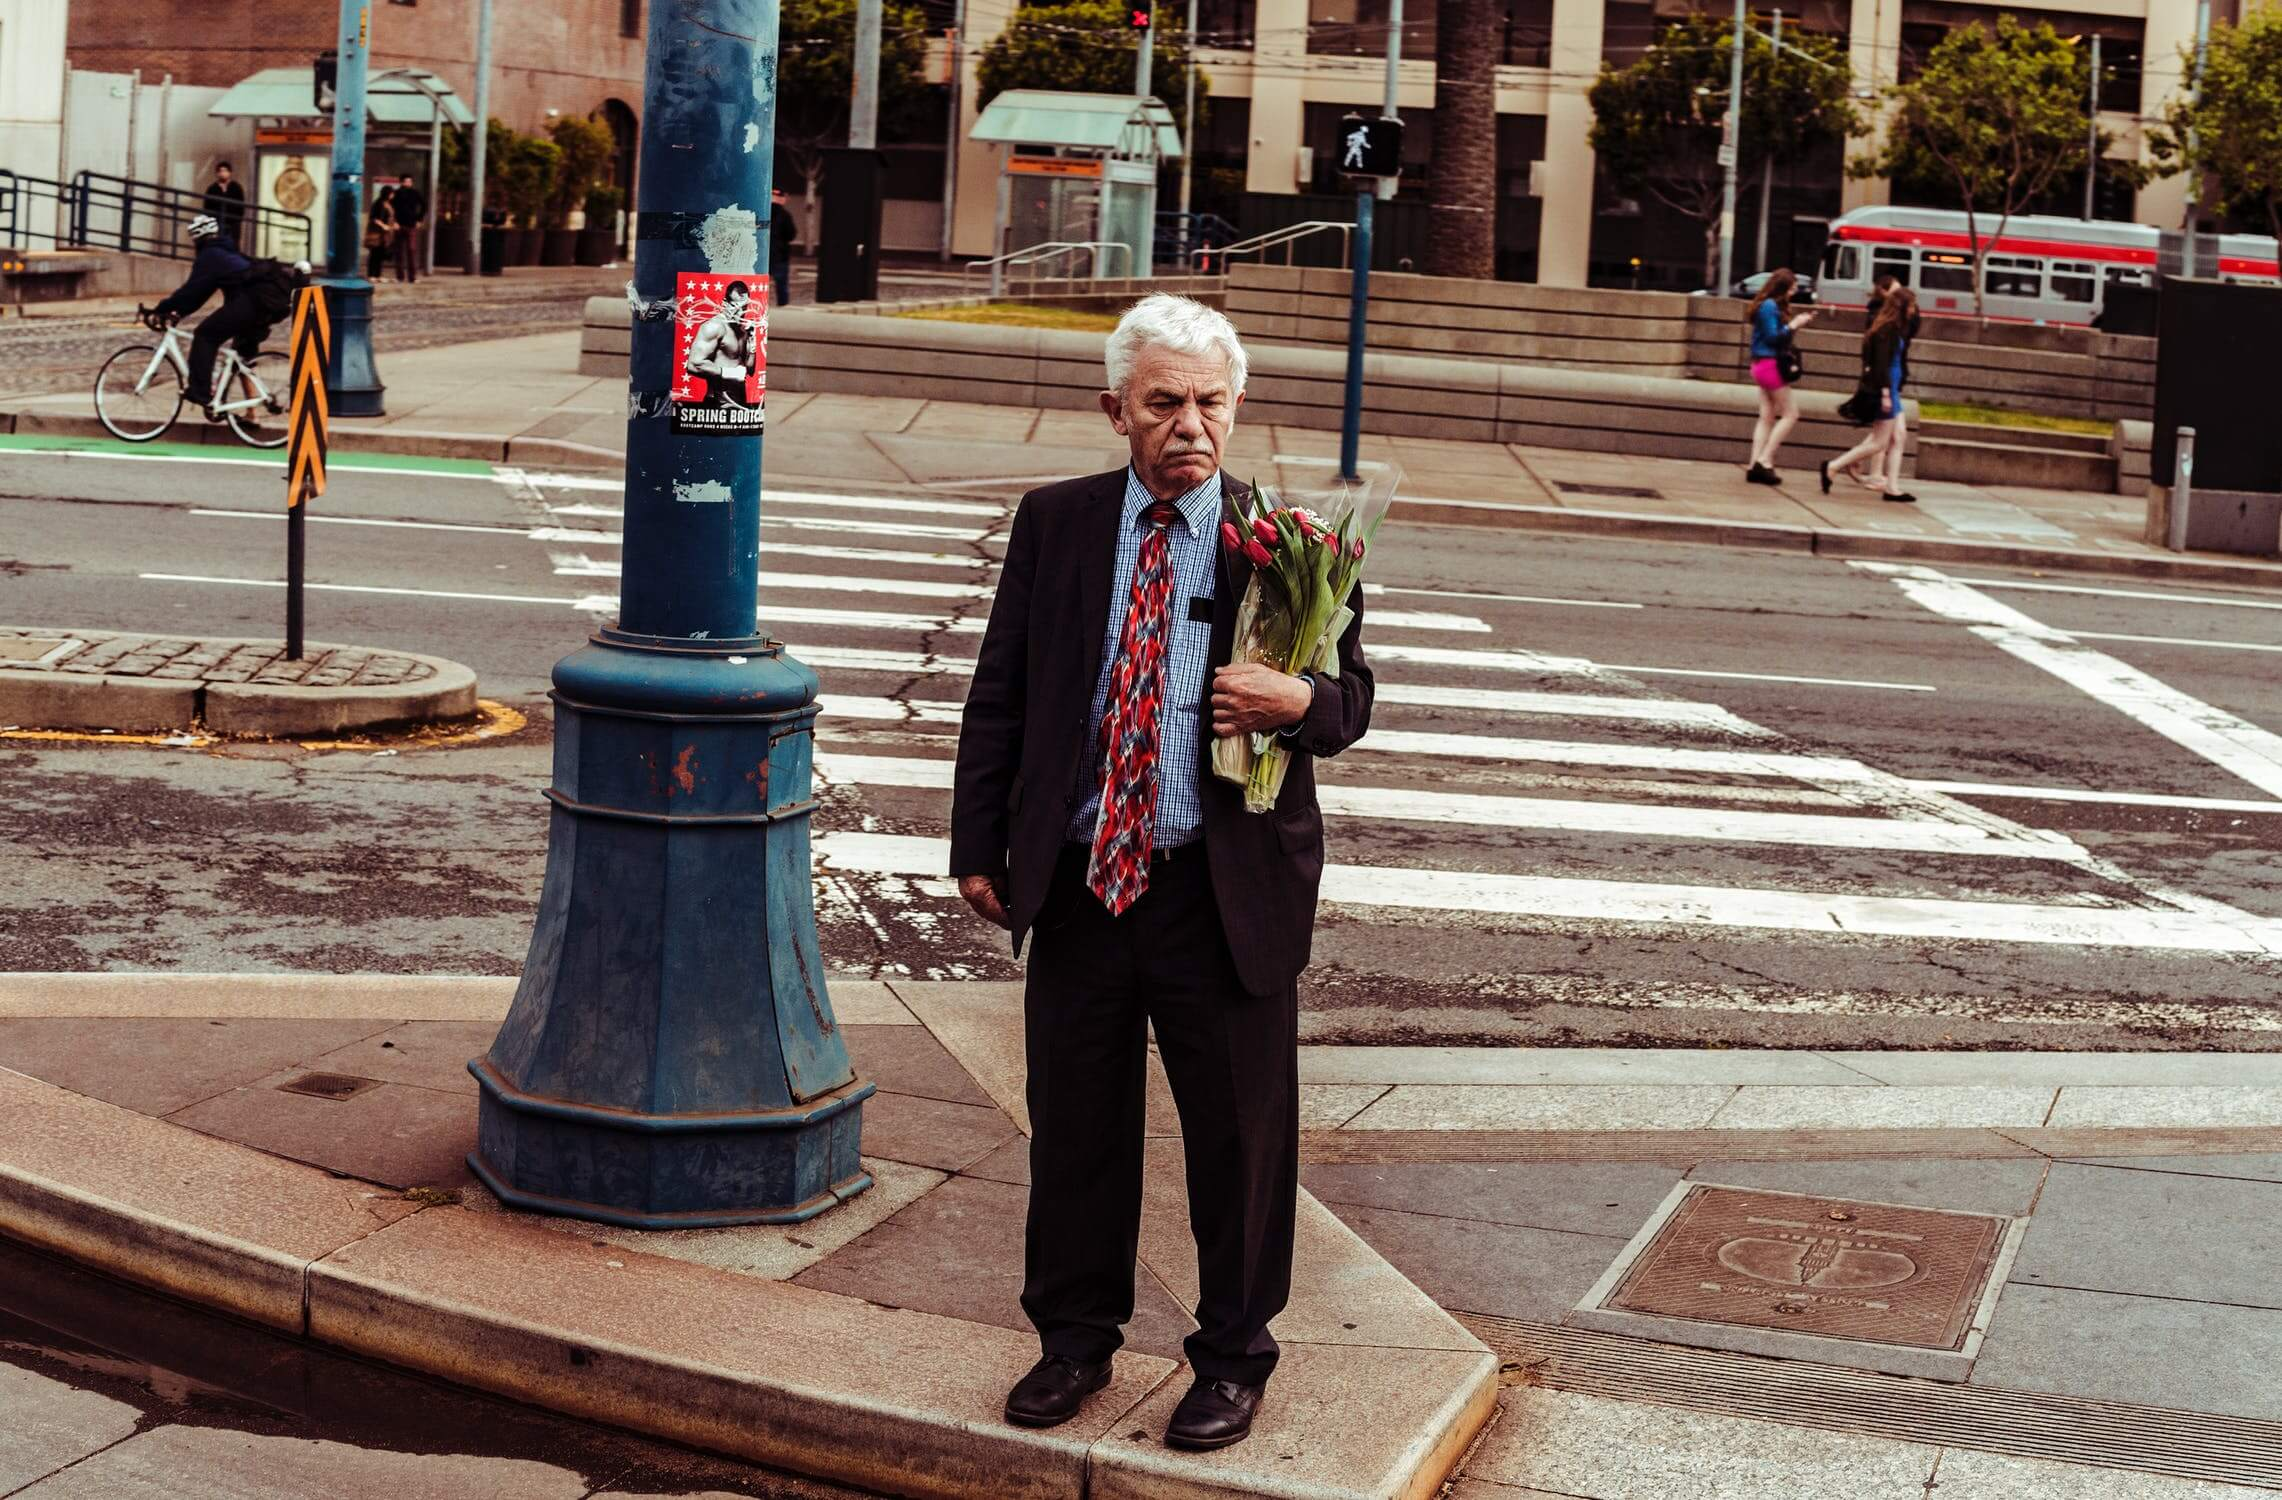 An older crossing the street to visit his wife at a senior living facility